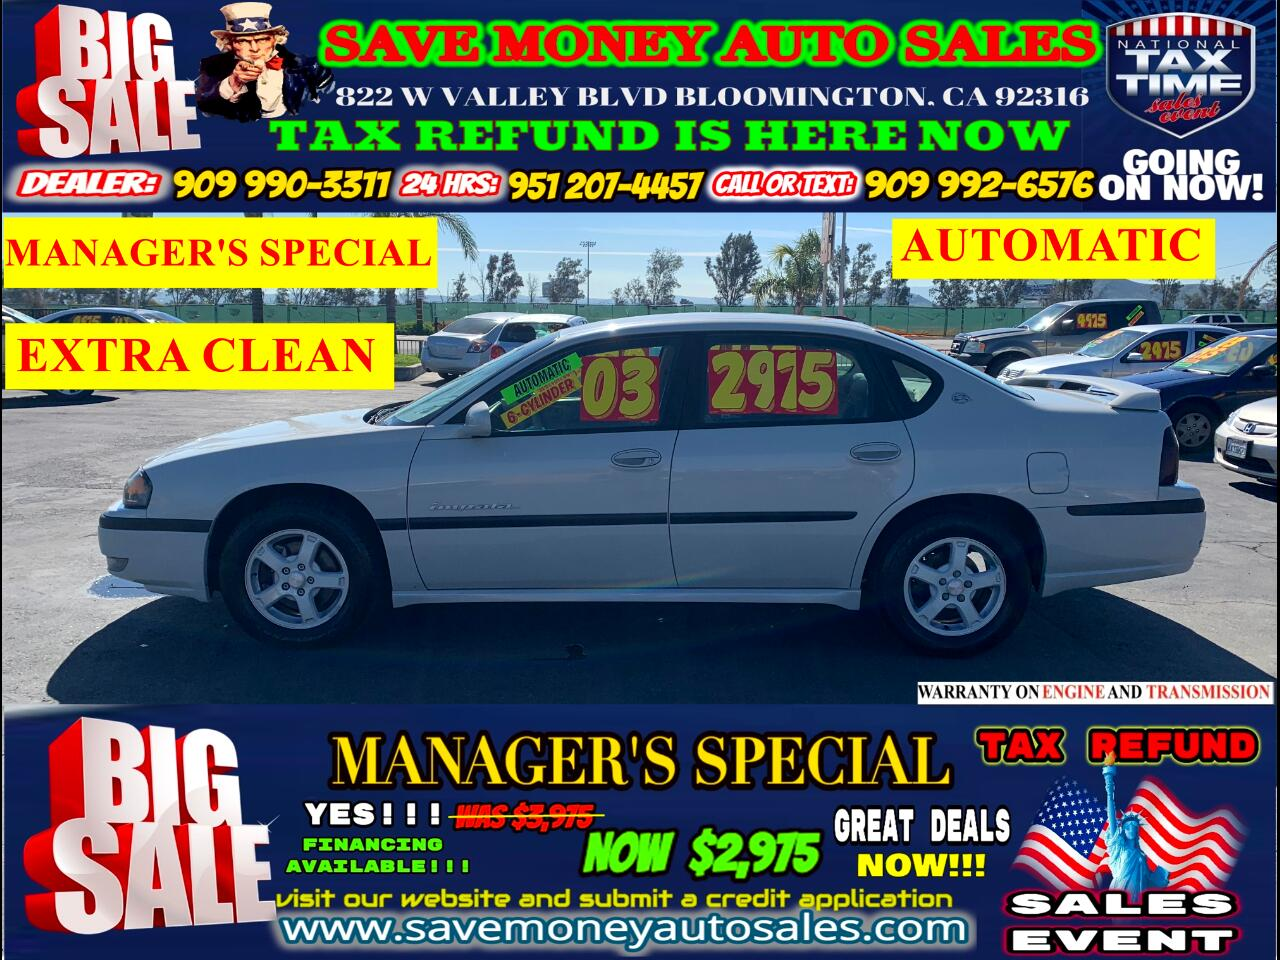 2003 Chevrolet Impala LS EDITION> 6-CYLINDER> EXTRA CLEAN>